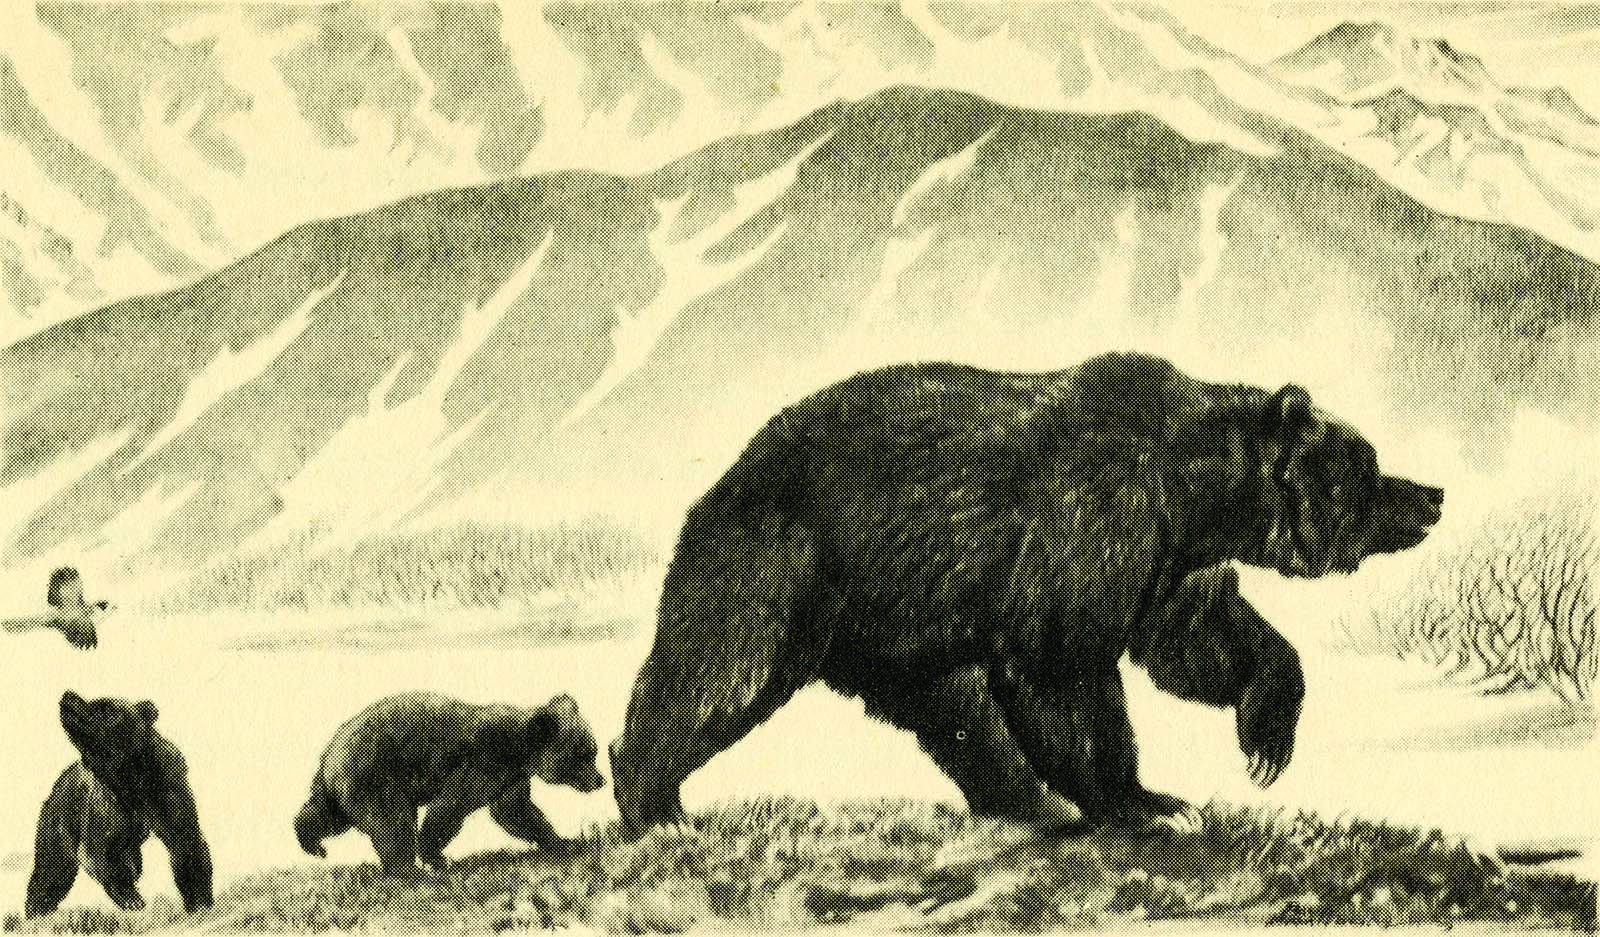 """Fig. 12: McCracken's bear family as depicted by the illustrator Paul Bransom in McCracken's book, """"The Biggest Bear on Earth"""" (Frederick A. Stokes Company, 1943)."""